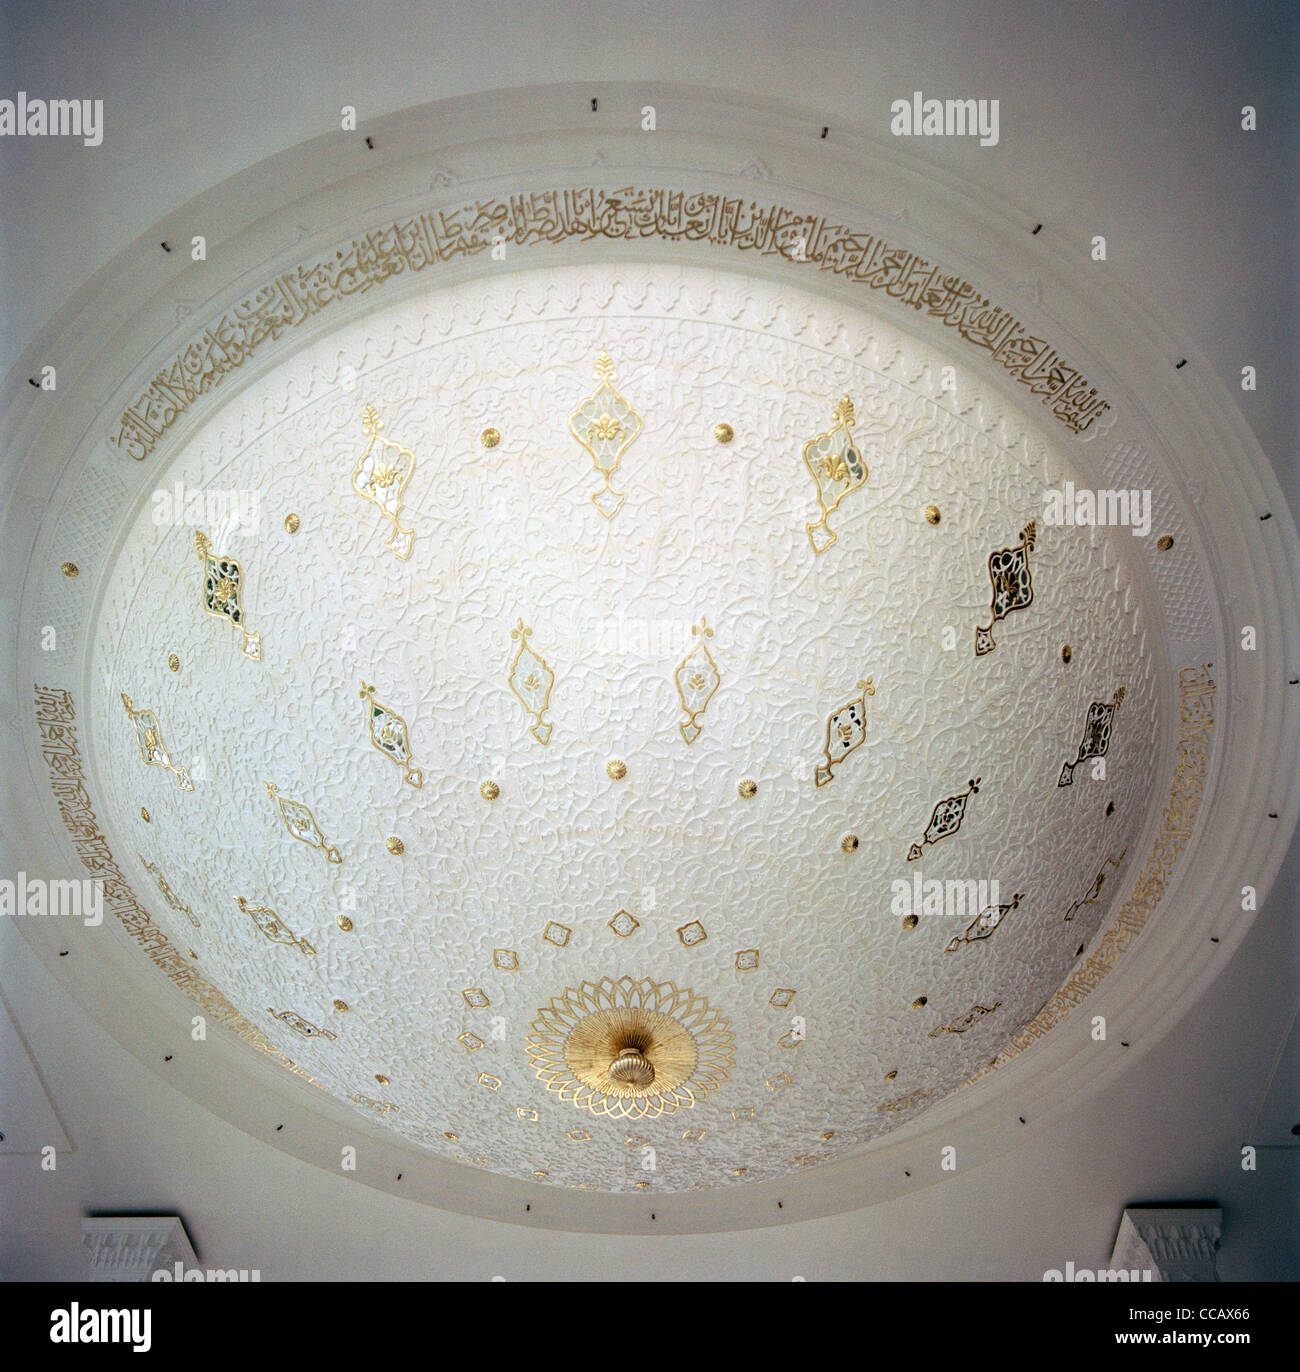 Inverted ceiling dome of the Islamic Arts Museum in Kuala Lumpur in Malaysia in Far East Southeast Asia. Art Architecture - Stock Image